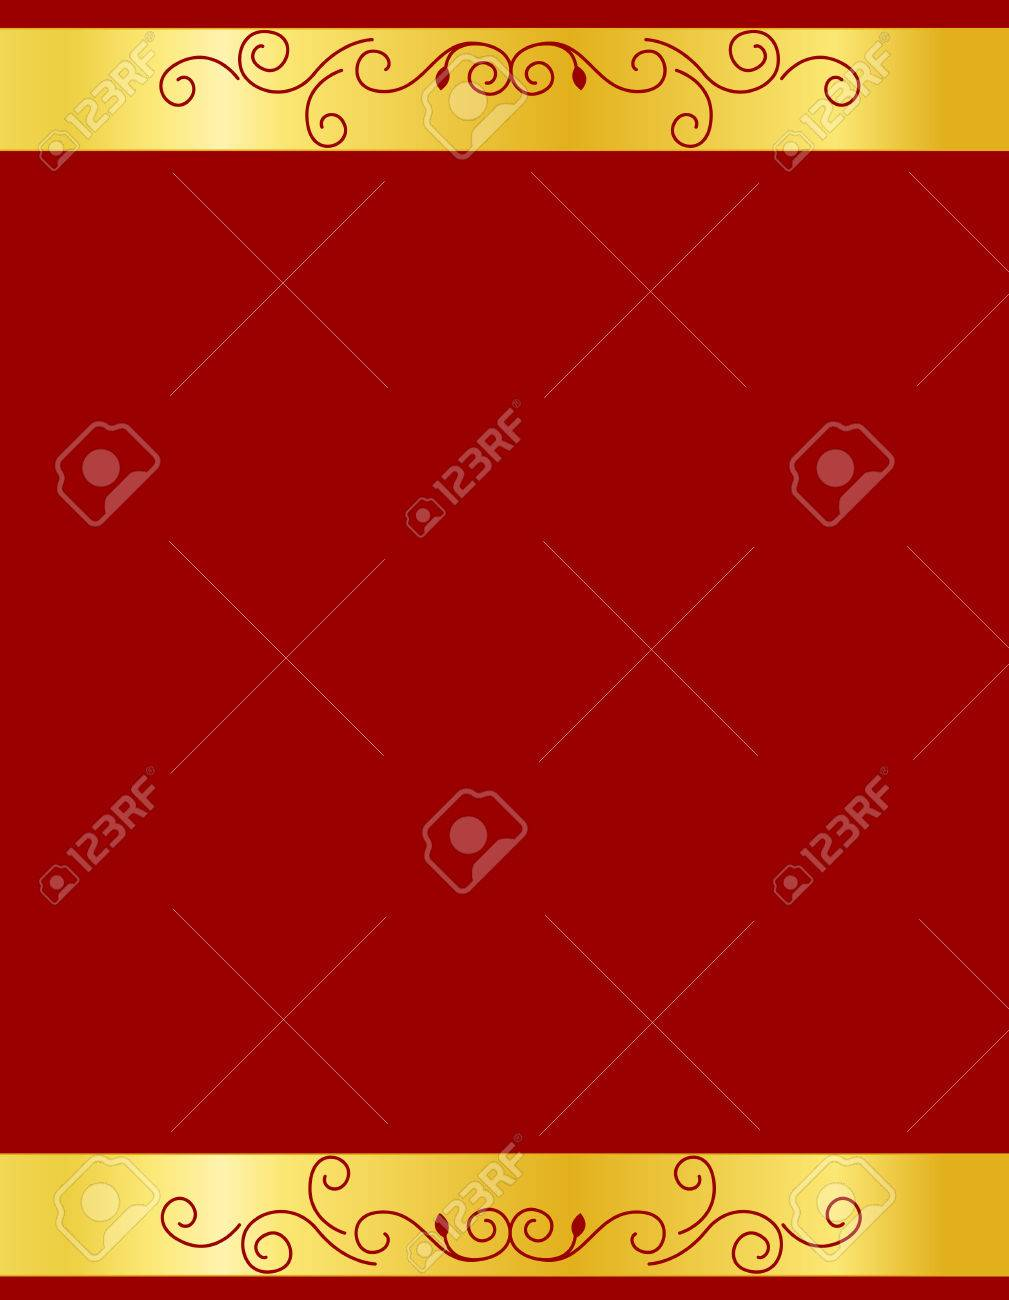 Gold And Red Ornamental Border / Frame Specially For Wedding ...